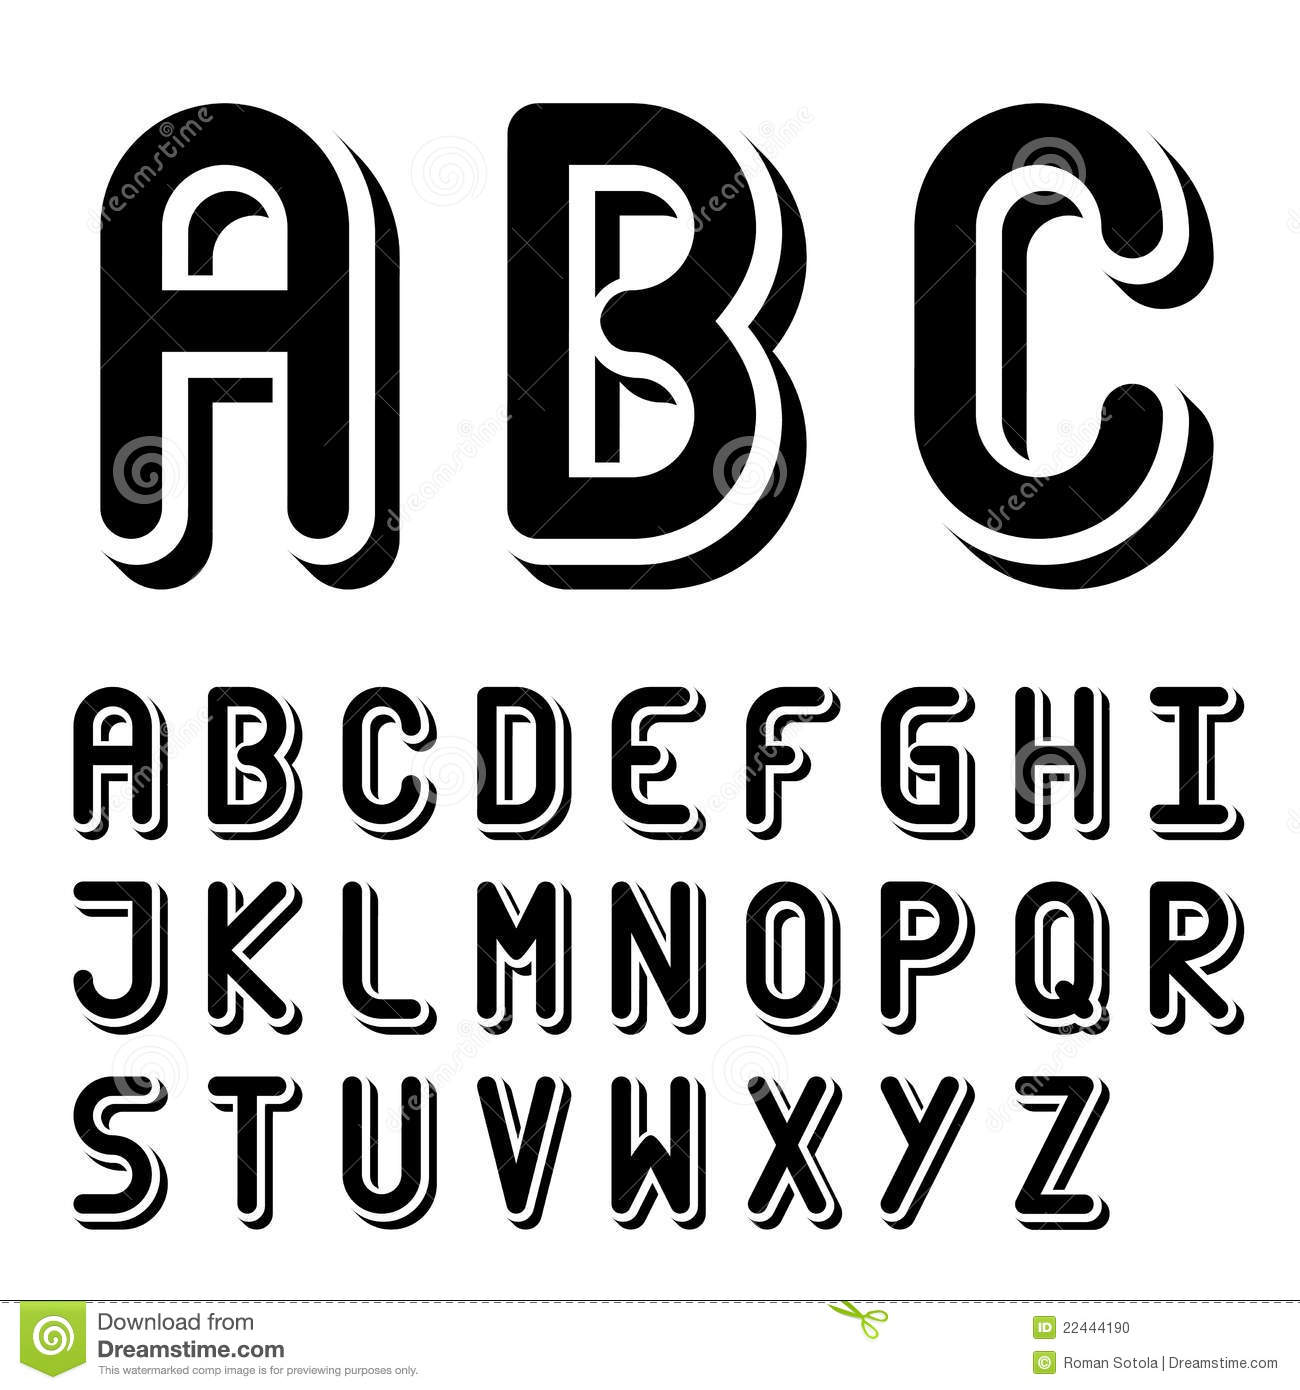 download original 3d black and white font alphabet stock vector illustration of design communication